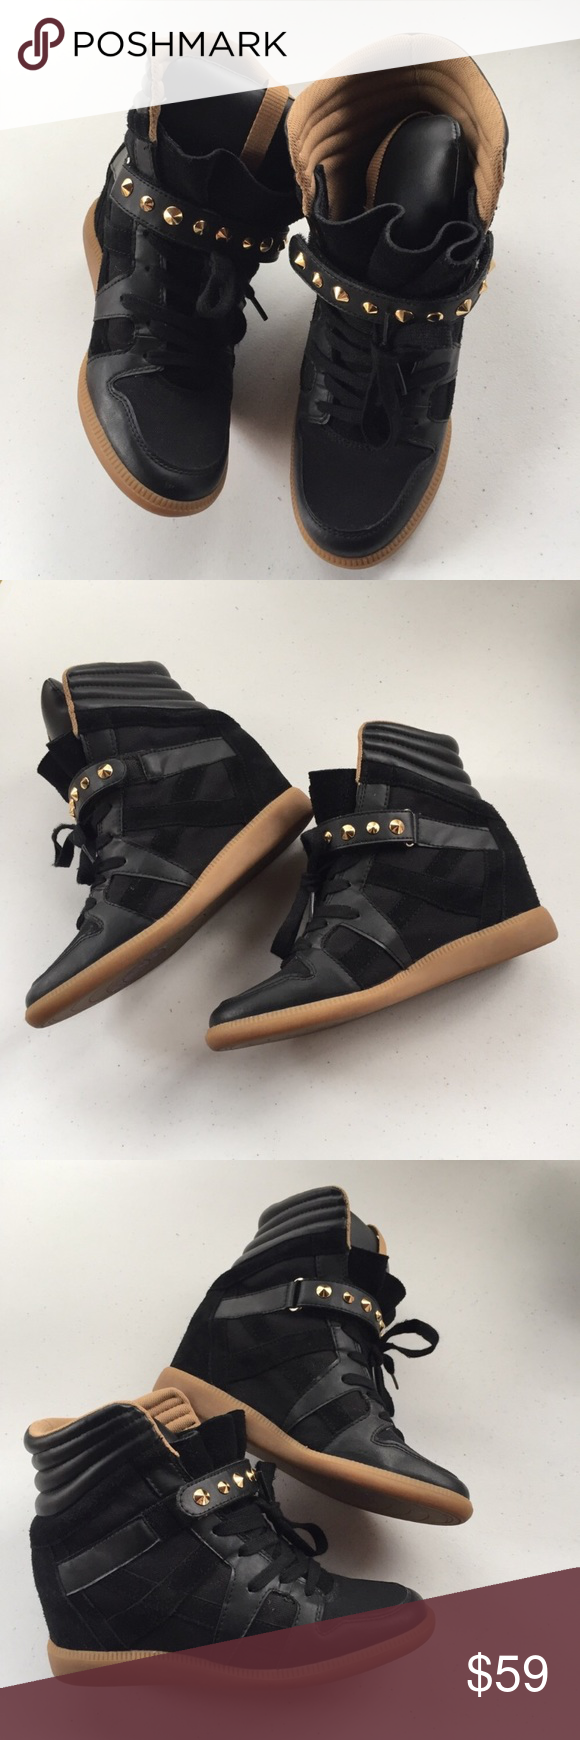 72bdbef8f4a Zara Trafaluc Hi-Top Studded Suede Wedge Sneakers Zara Trafaluc (TRF) wedge  sneakers